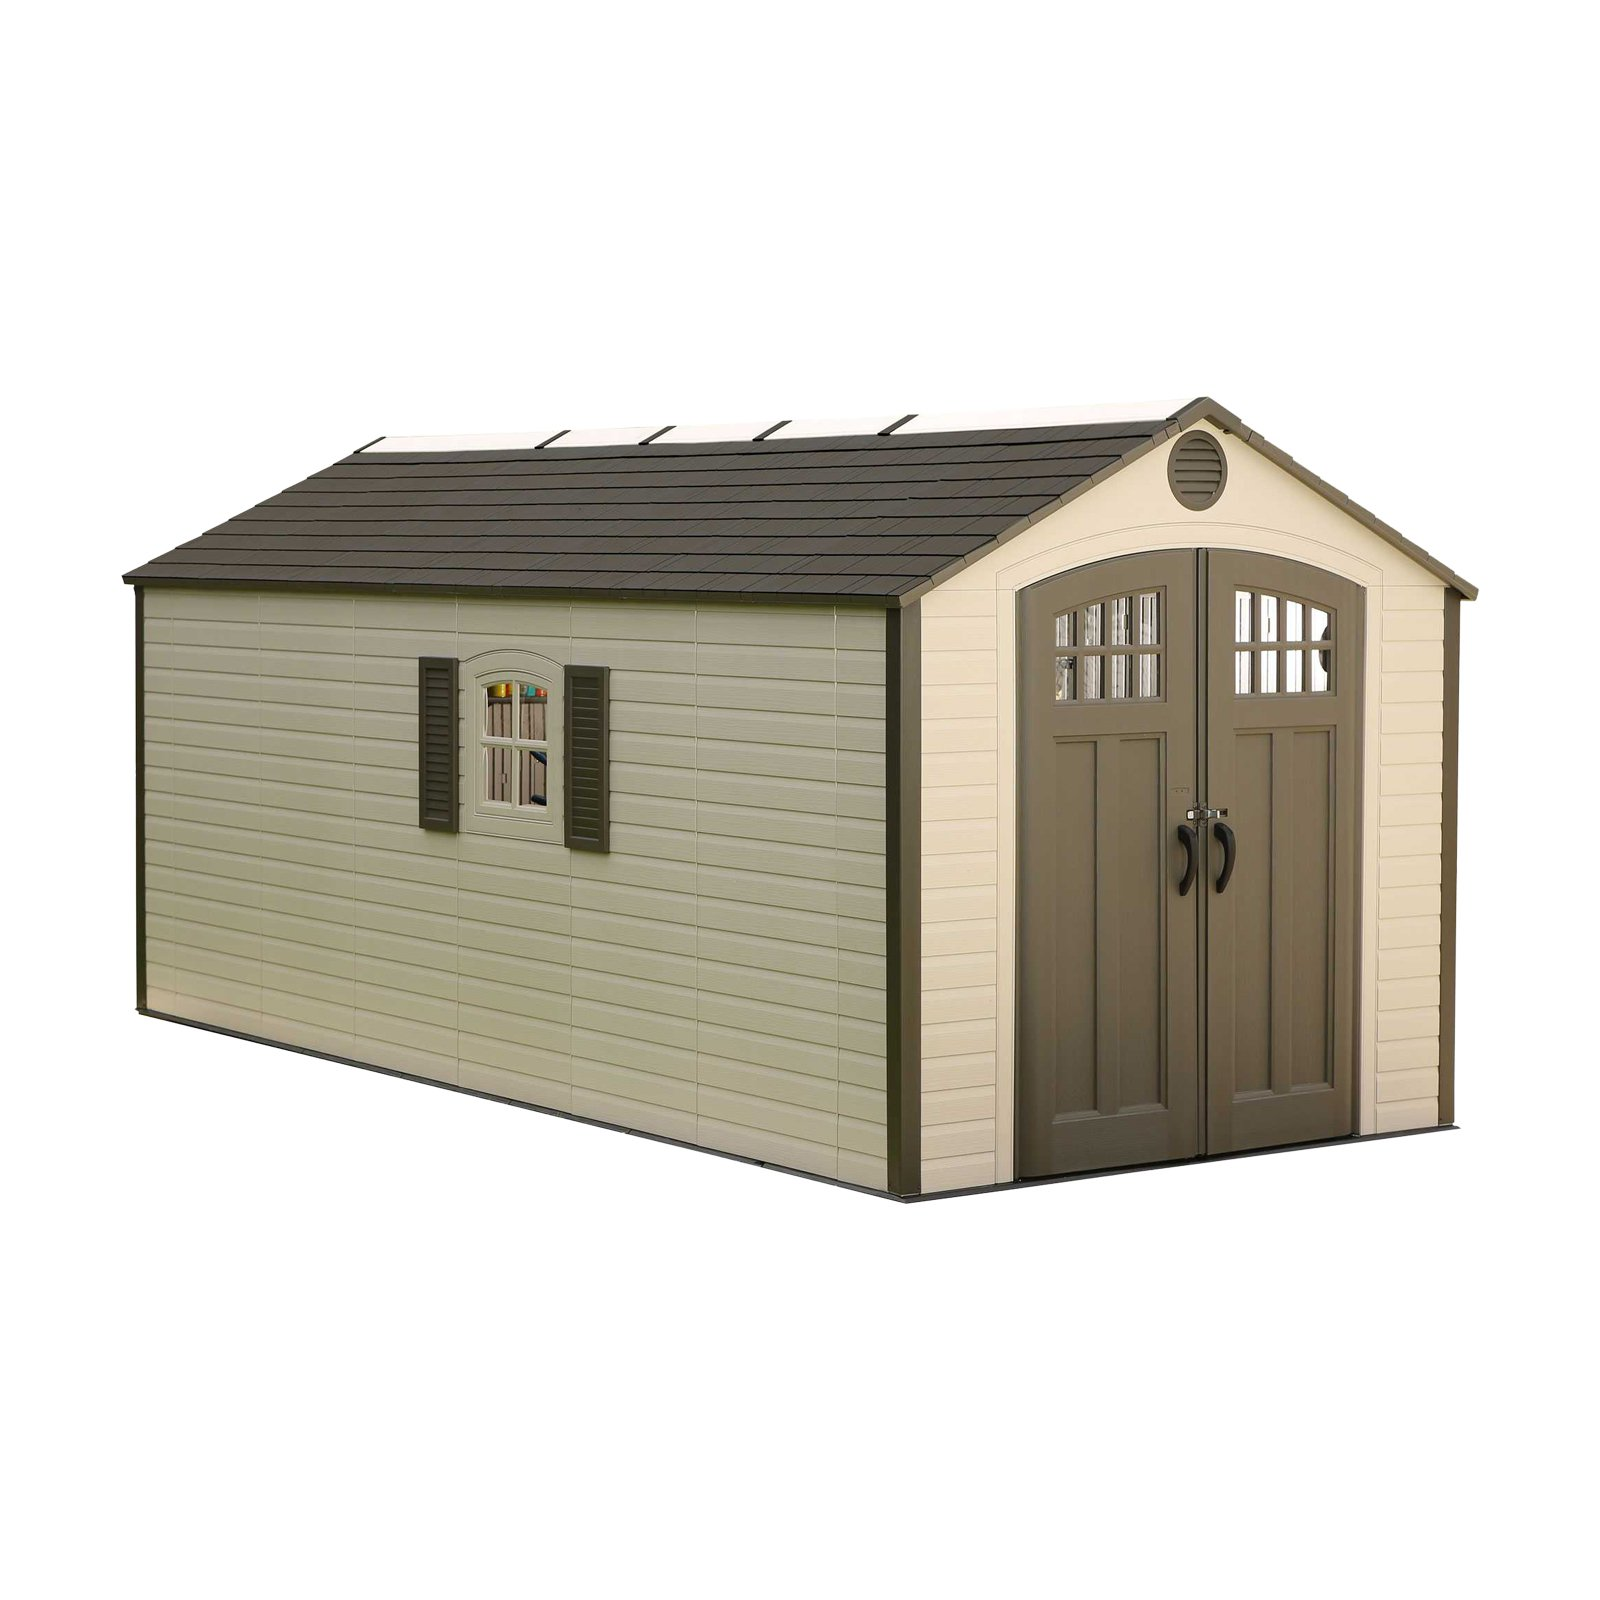 Lifetime 8' X 17.5' Outdoor Storage Shed